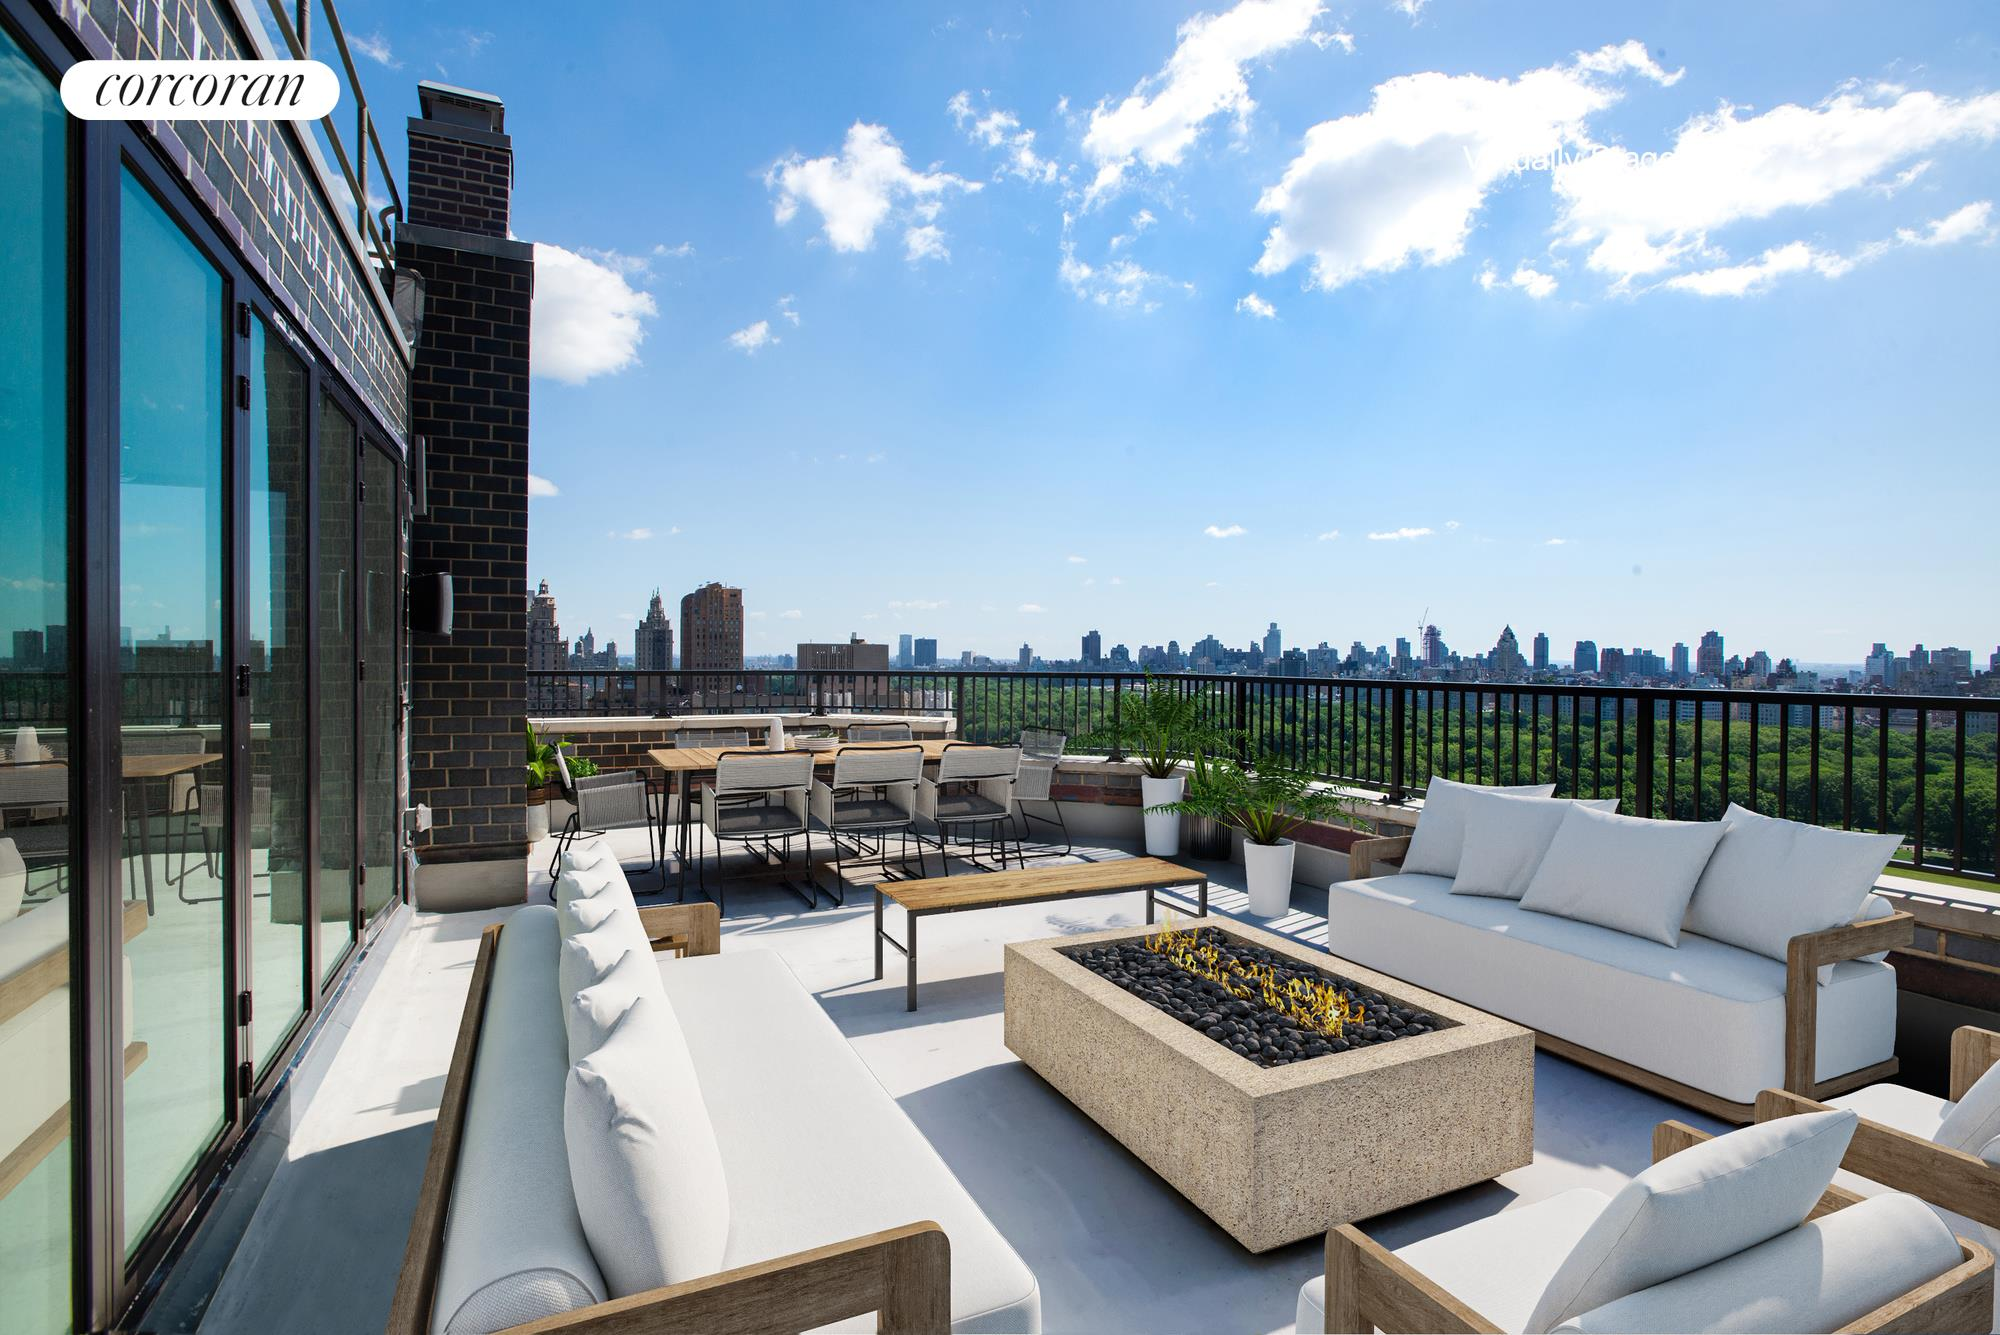 Offering one of the most captivating views of Central Park and New York City, this truly one-of-a-kind Penthouse Duplex with extensive outdoor space has undergone a meticulous and state-of-the-art renovation. This extraordinary, sun-drenched 4 Bedroom, 4 Bathroom residence, which occupies the entirety of the 25th and 26th Floors, features a private elevator landing that leads to outstanding entertaining rooms and four distinct outdoor spaces. This premier condominium residence showcases 21st Century technology with approx. 3,000 square foot interior and just under 1,000 square foot exterior.The centerpiece of the Great Room is the stunning 7 -foot gas fireplace surrounded by double glass, which is flanked by the media and living room. The impressive custom Leicht eat-in kitchen is a showstopper and would be the delight of any chef! Top-of-line appliances include Subzero, Wolf, Miele dishwasher and wine cooler and custom black Silestone countertops with integrated Pitt countertop gas burners and a 10-foot kitchen island. The primary bedroom floats over Central Park with a wall of windows and a 20-foot Nana Wall creating an indoor/ outdoor living experience. The oversized spa bathroom features a stunning double shower with numerous shower heads, a freestanding Aquatica Purescape Soaking tub for two, double vanities and a separate Toto water closet. Three additional well-appointed bedrooms are located on the 25th floor, two of which are en-suite.Extensive smarthome set-up, including Sonos for audio, Ring security system, Nest thermostats, Legrand Adorne smart lighting, cat 6 wiring and custom sound system and wifi throughout, including speakers on balconies and terraces making this home unlike anything in the city! Full service boutique condominium steps from Central Park and Lincoln Center. Superb restaurants abound, Jean George, Per Se, The Leopard at Des Artist, Boulud Sud and the citys best organic markets.